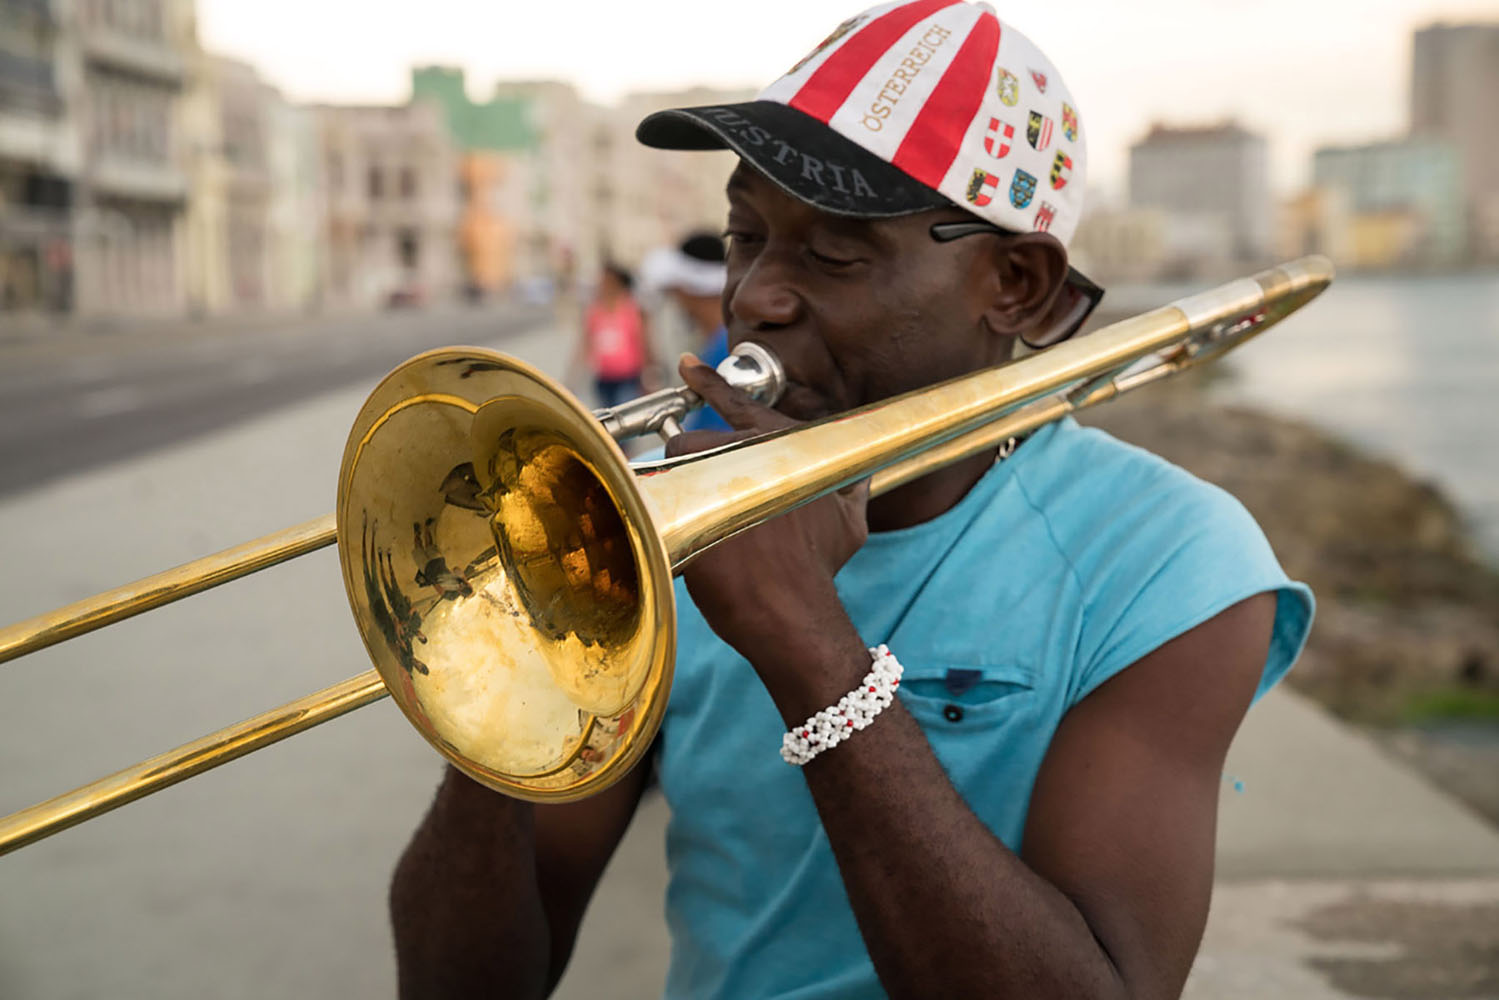 A man playing Cuban music on a trombone